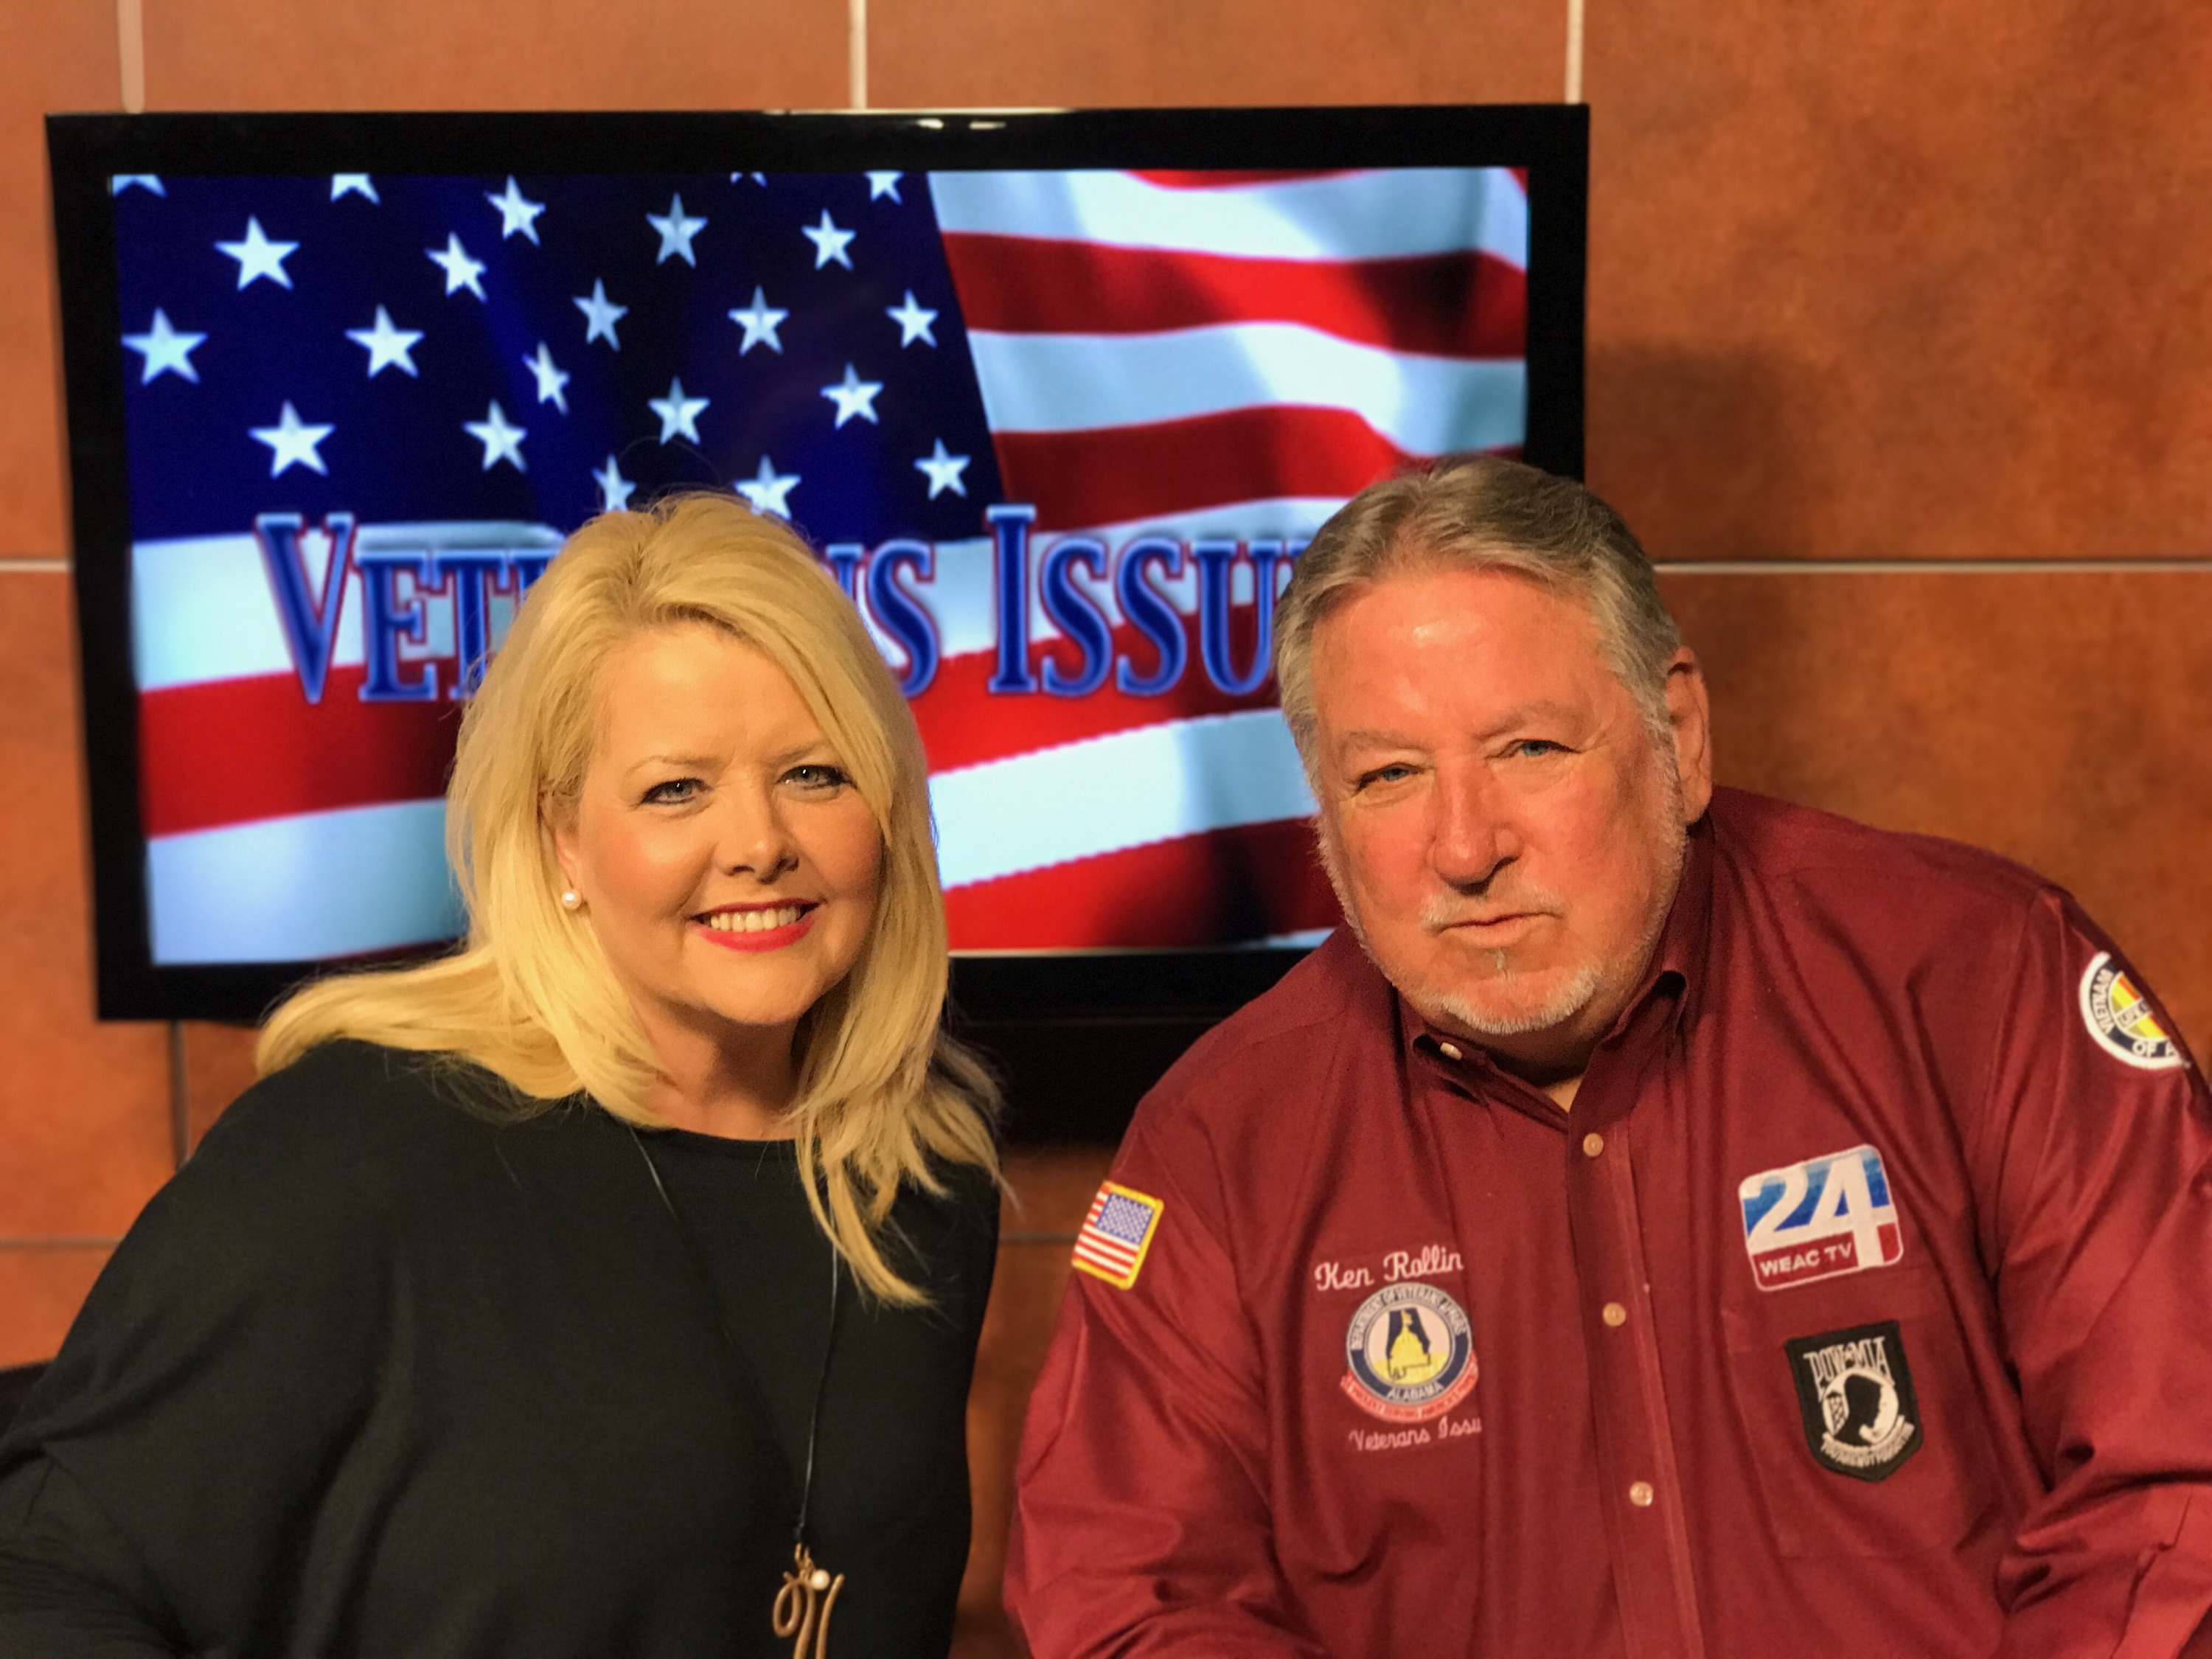 Vonda Easley Of Southern Gospel Weekend Talking To Ken Rollins Of Channel 24